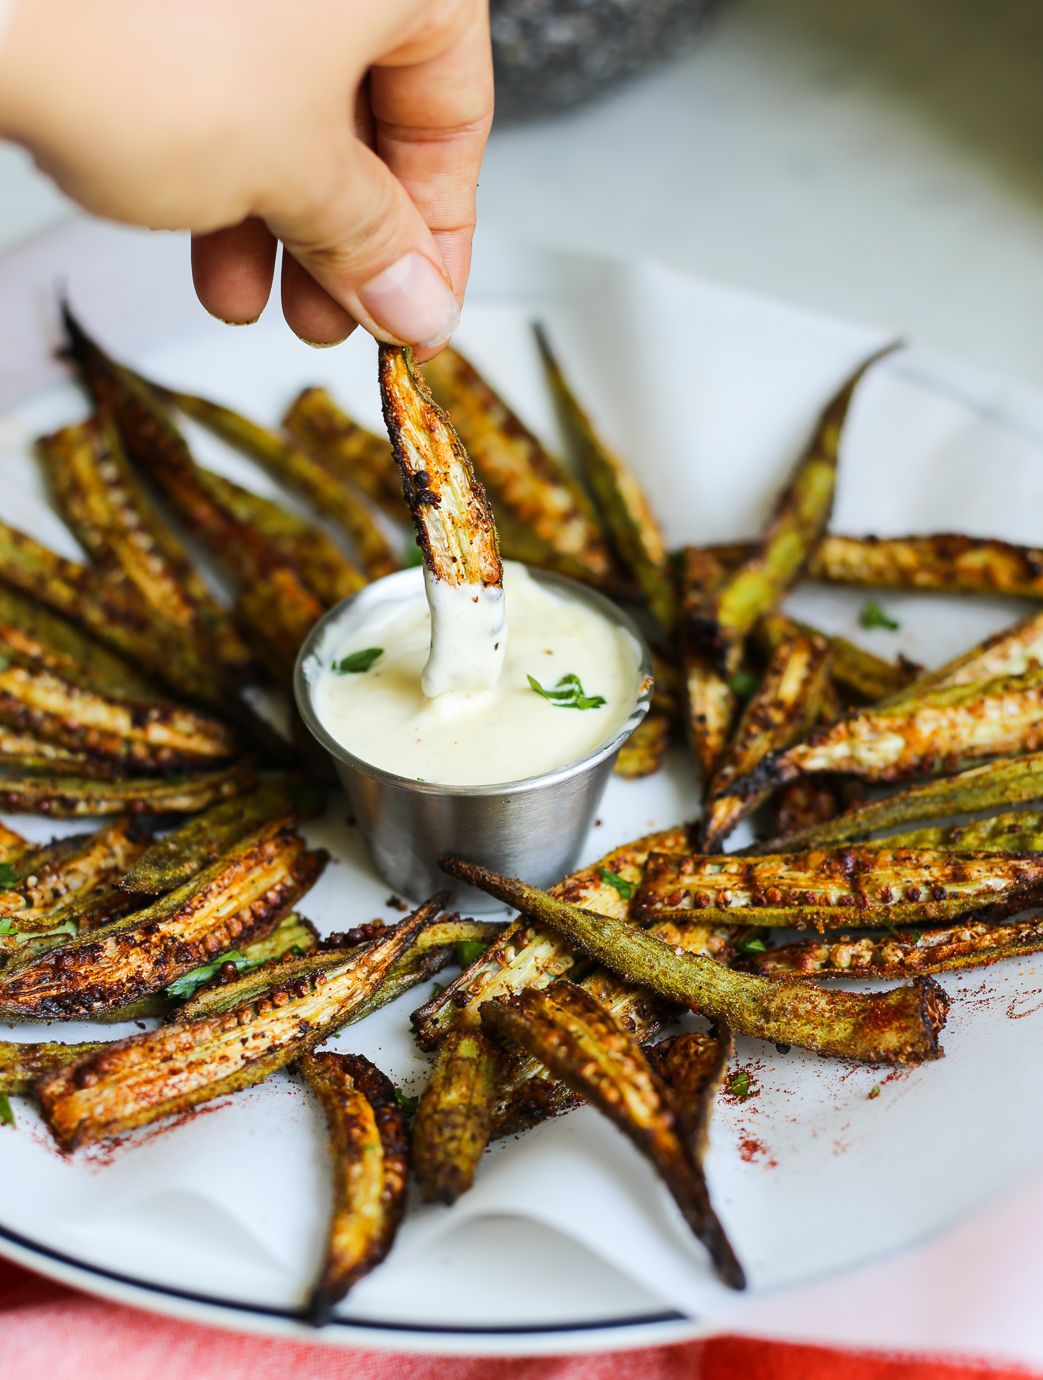 Cajun Oven Roasted Okra Fries With Lemon Garlic Aioli The Defined Dish Recipe Okra Recipes Roasted Okra Recipes